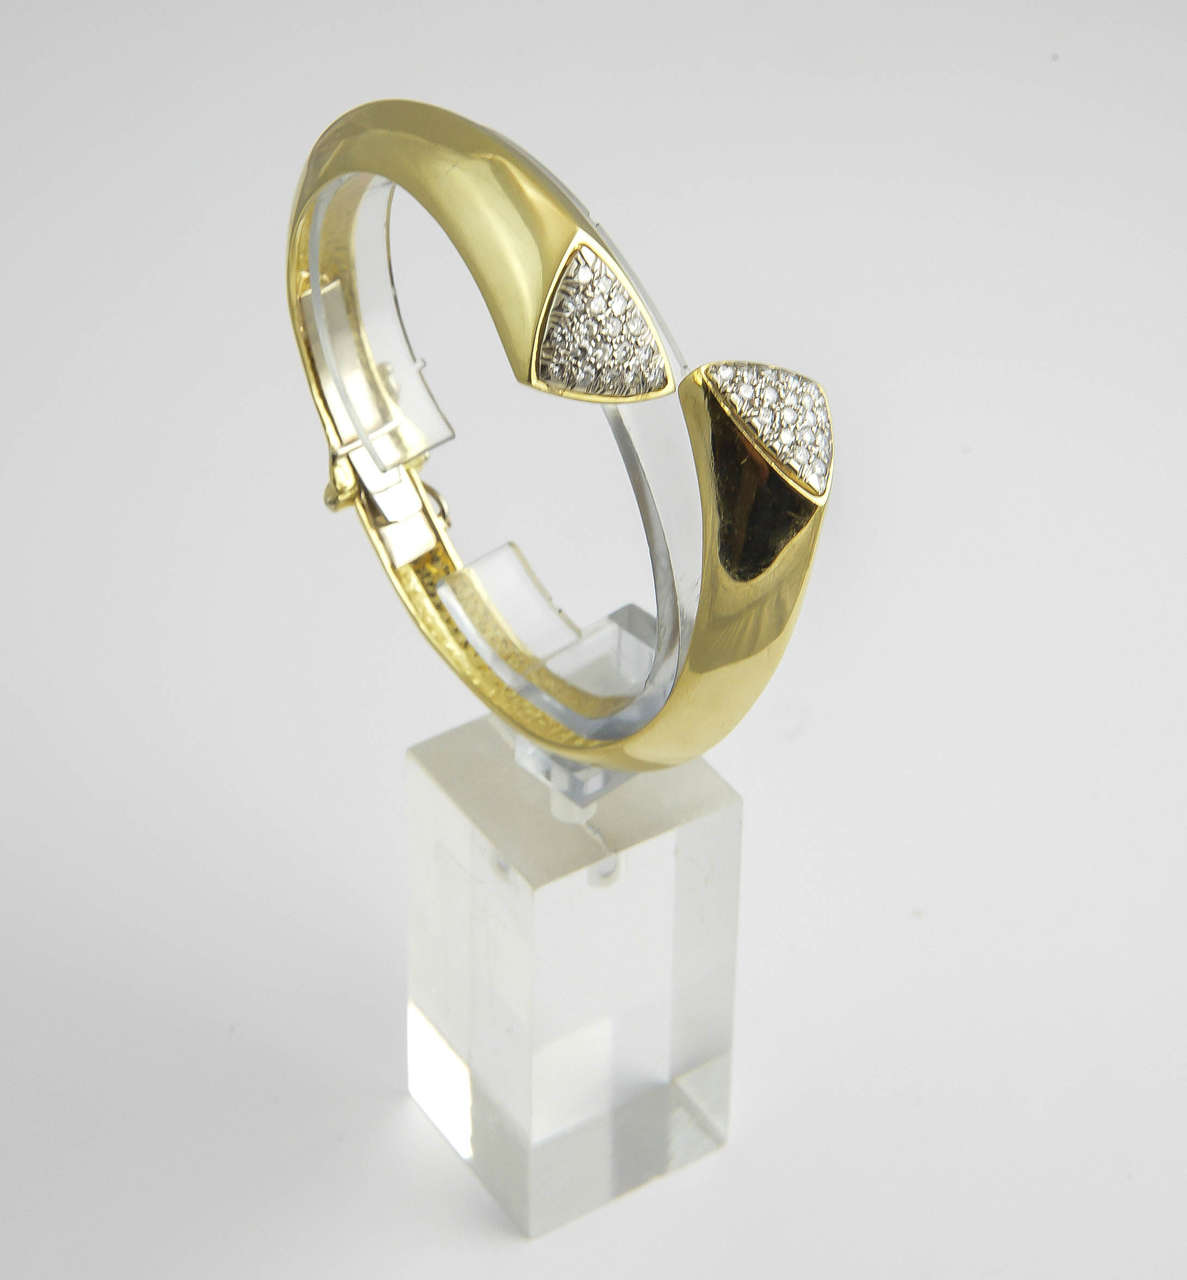 Geometric 18k gold hinged bangle bracelet with pave diamond triangles.